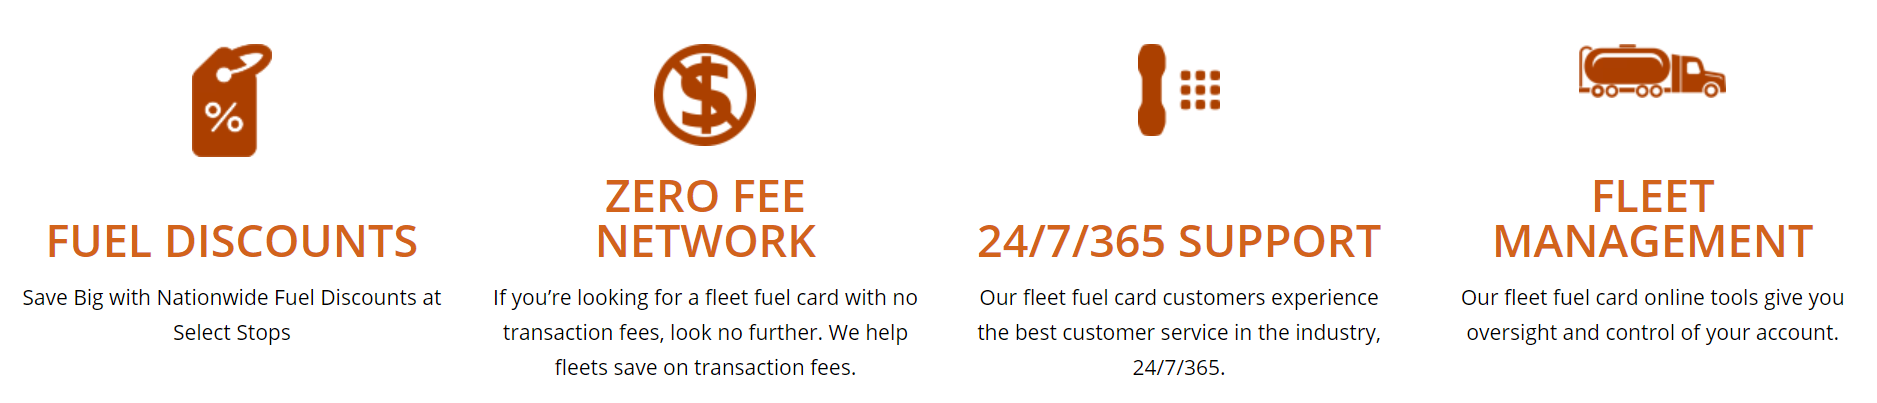 Fuel Discounts: Save Big with Nationwide Fueld Discounts at Select Shops. Zero Fee Network: If you're looking for a fleet fuel card with no transaction fees, look no further. We help fleets save on transaction fees. 24/7/365 Support: Our fleet fuel card customers experience the best customer service in the industry, 24/7/365. Fleet Management: Our fleet fuel card online tools give you oversight and control of your account.